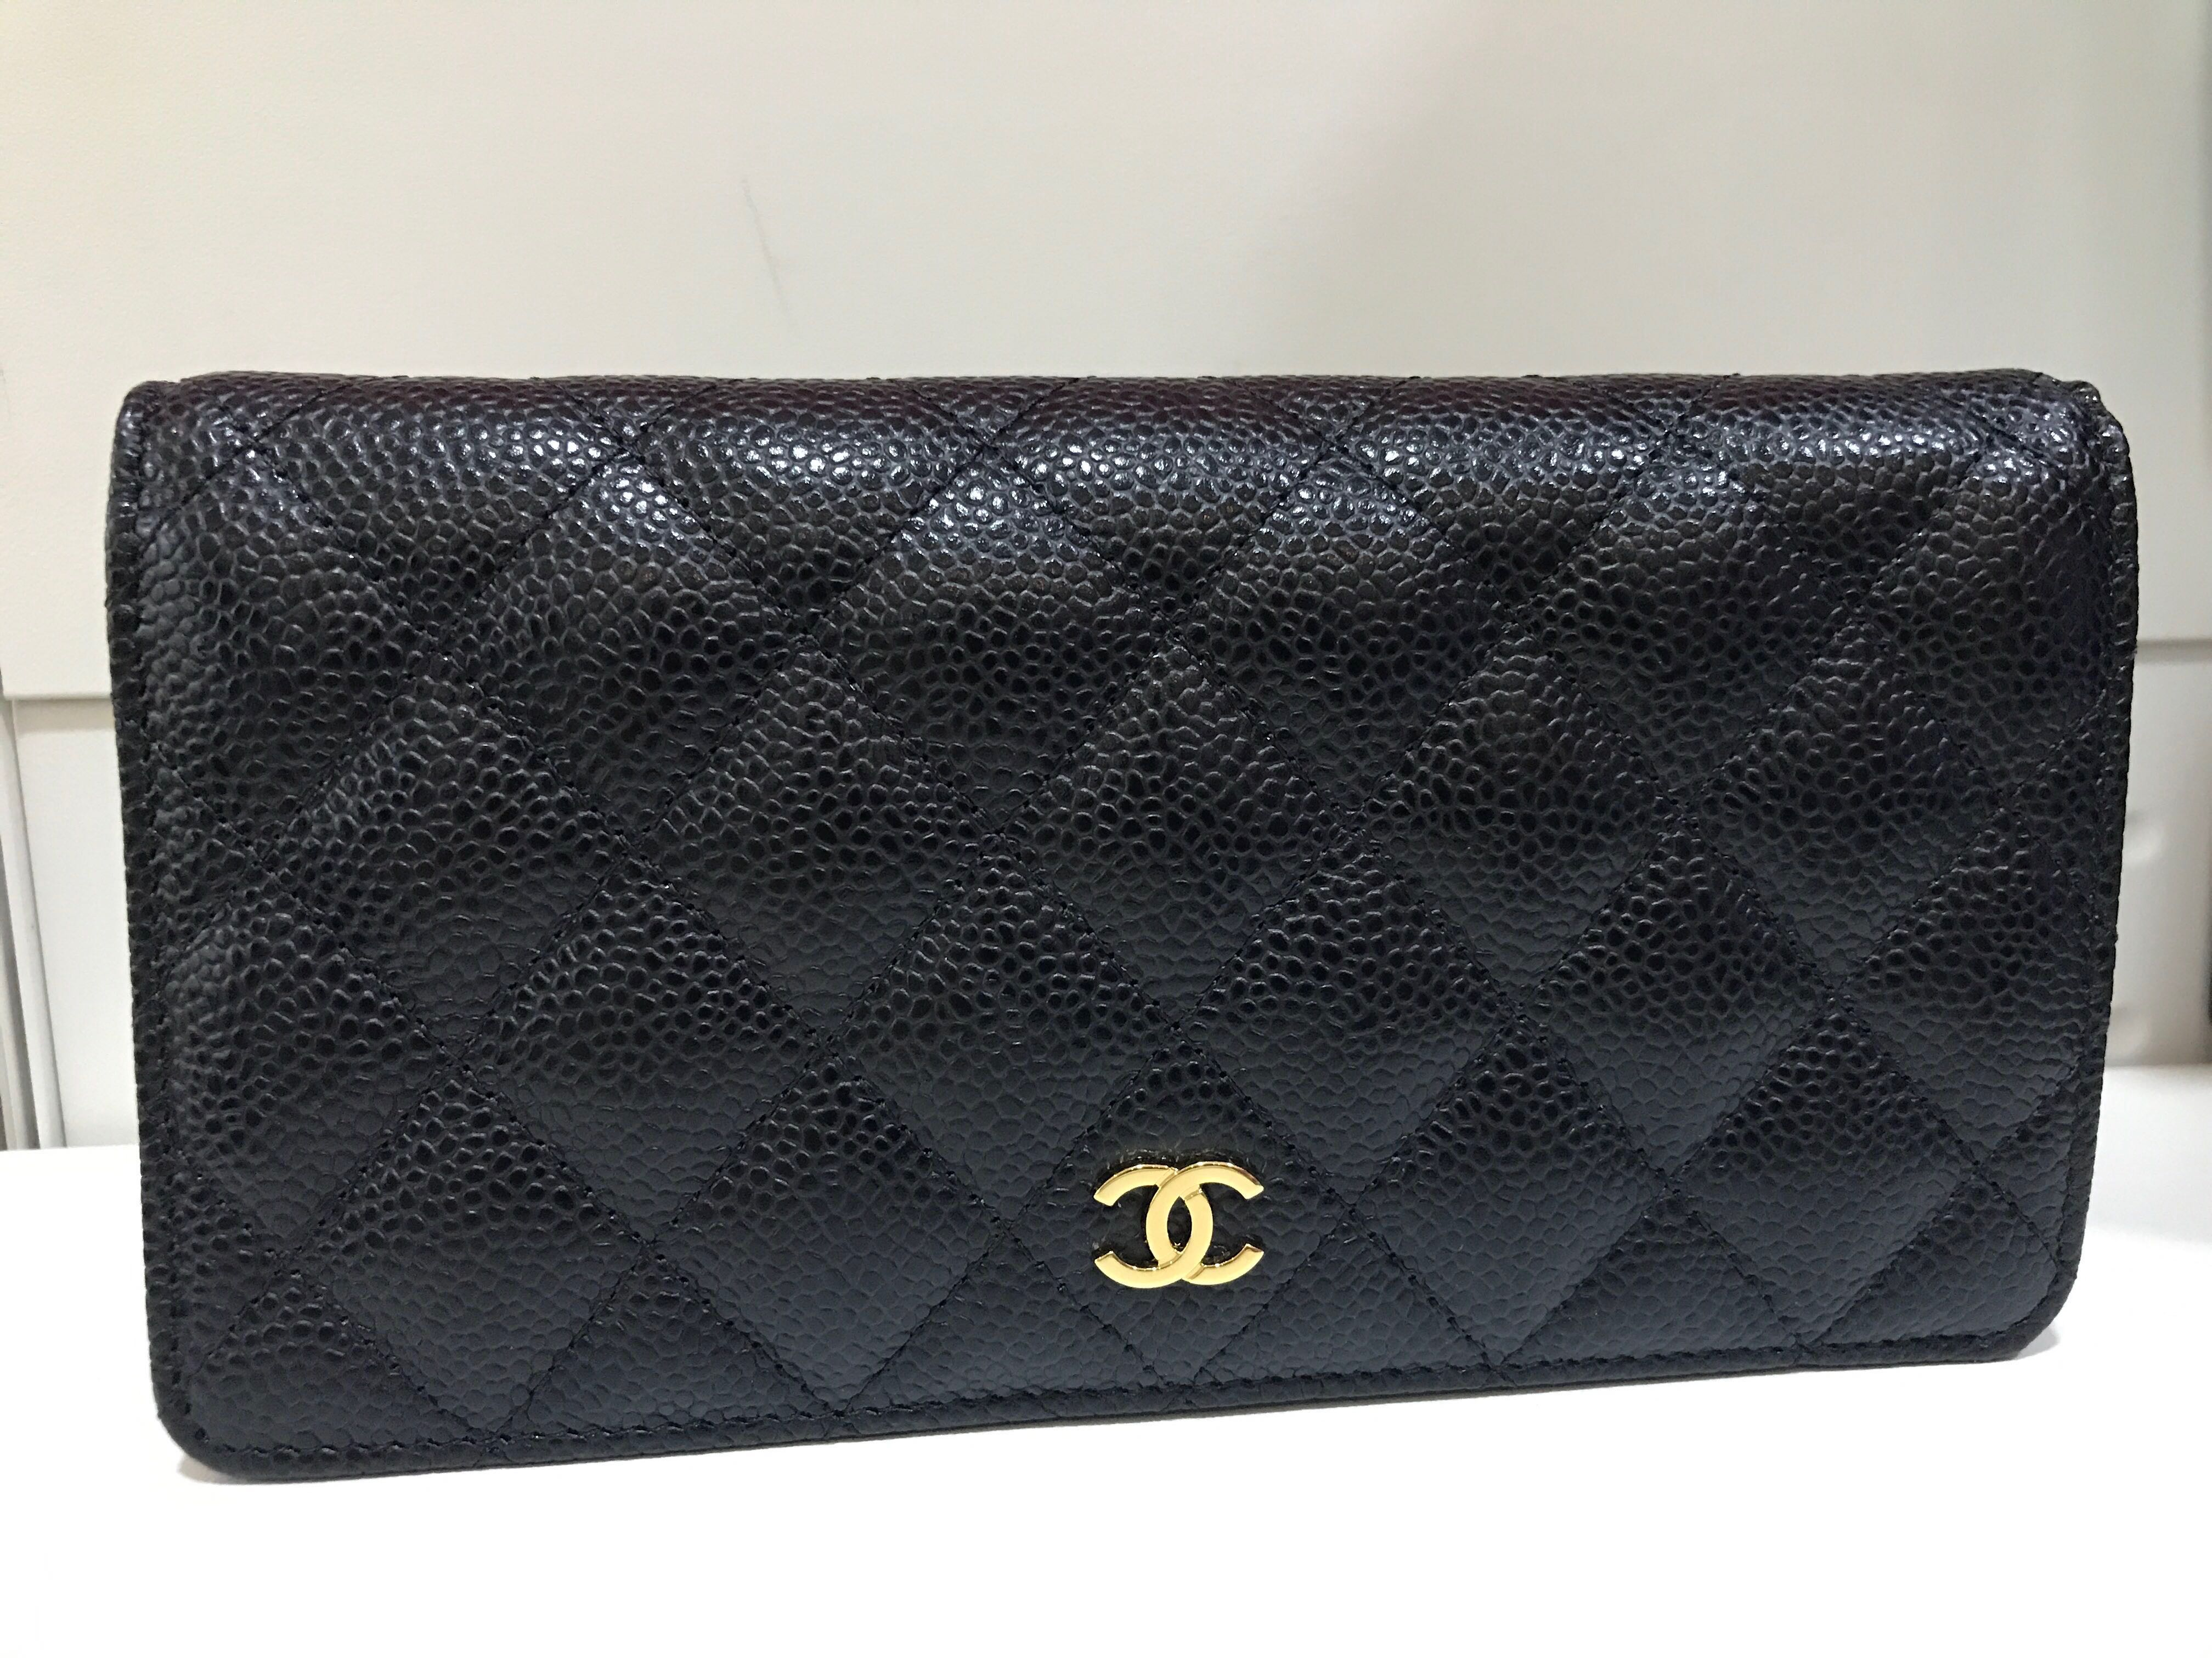 7d57bc2afd62 Chanel Bifold Classic Wallet Caviar, Luxury, Bags & Wallets, Wallets on  Carousell